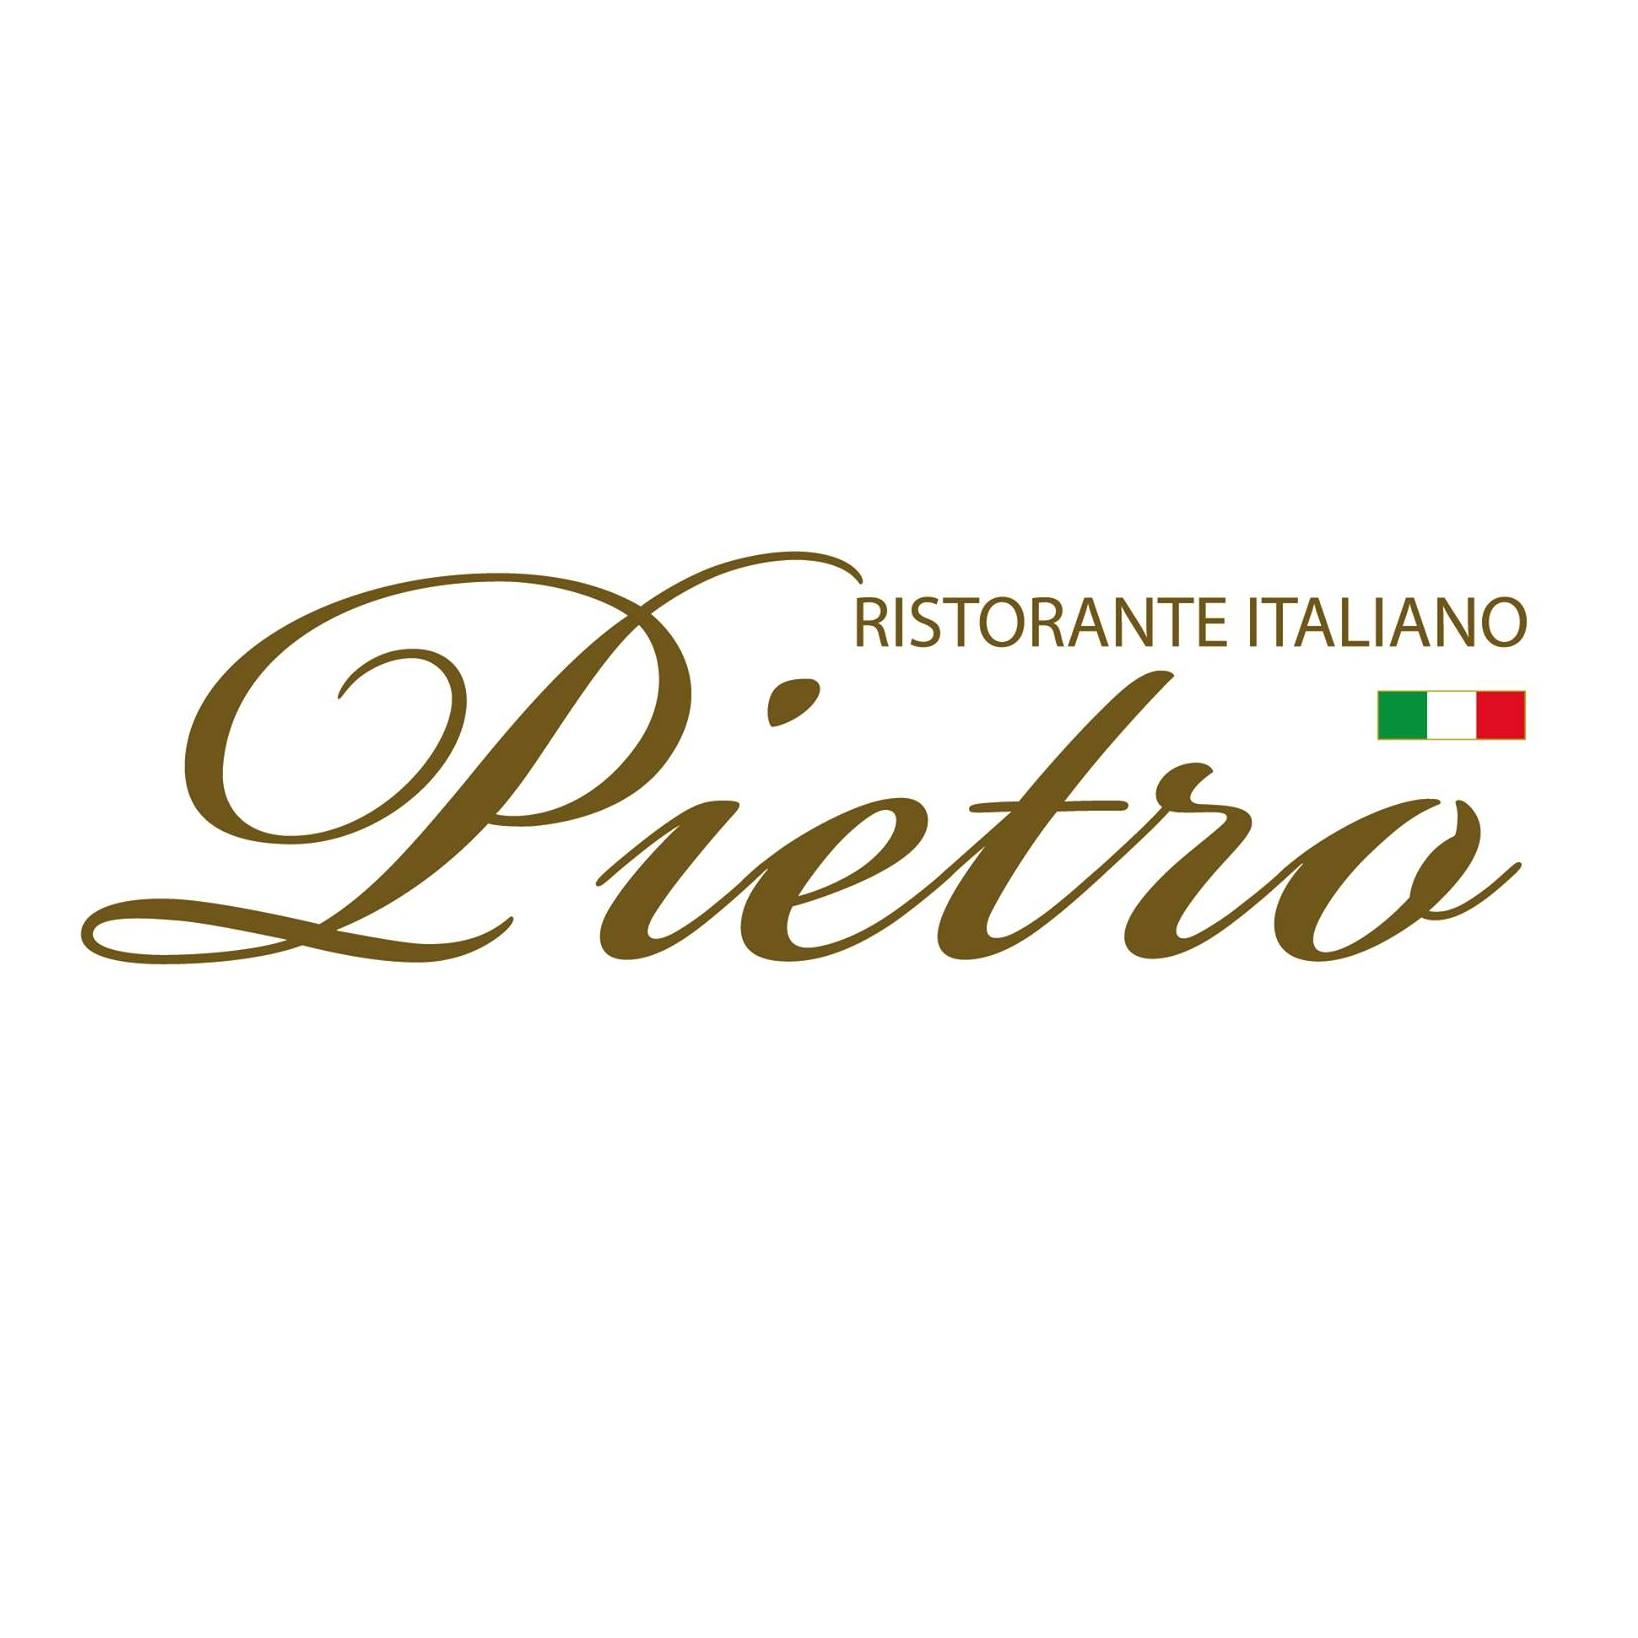 Pietro Ristorante Italiano | Why Not Deals & Promotions